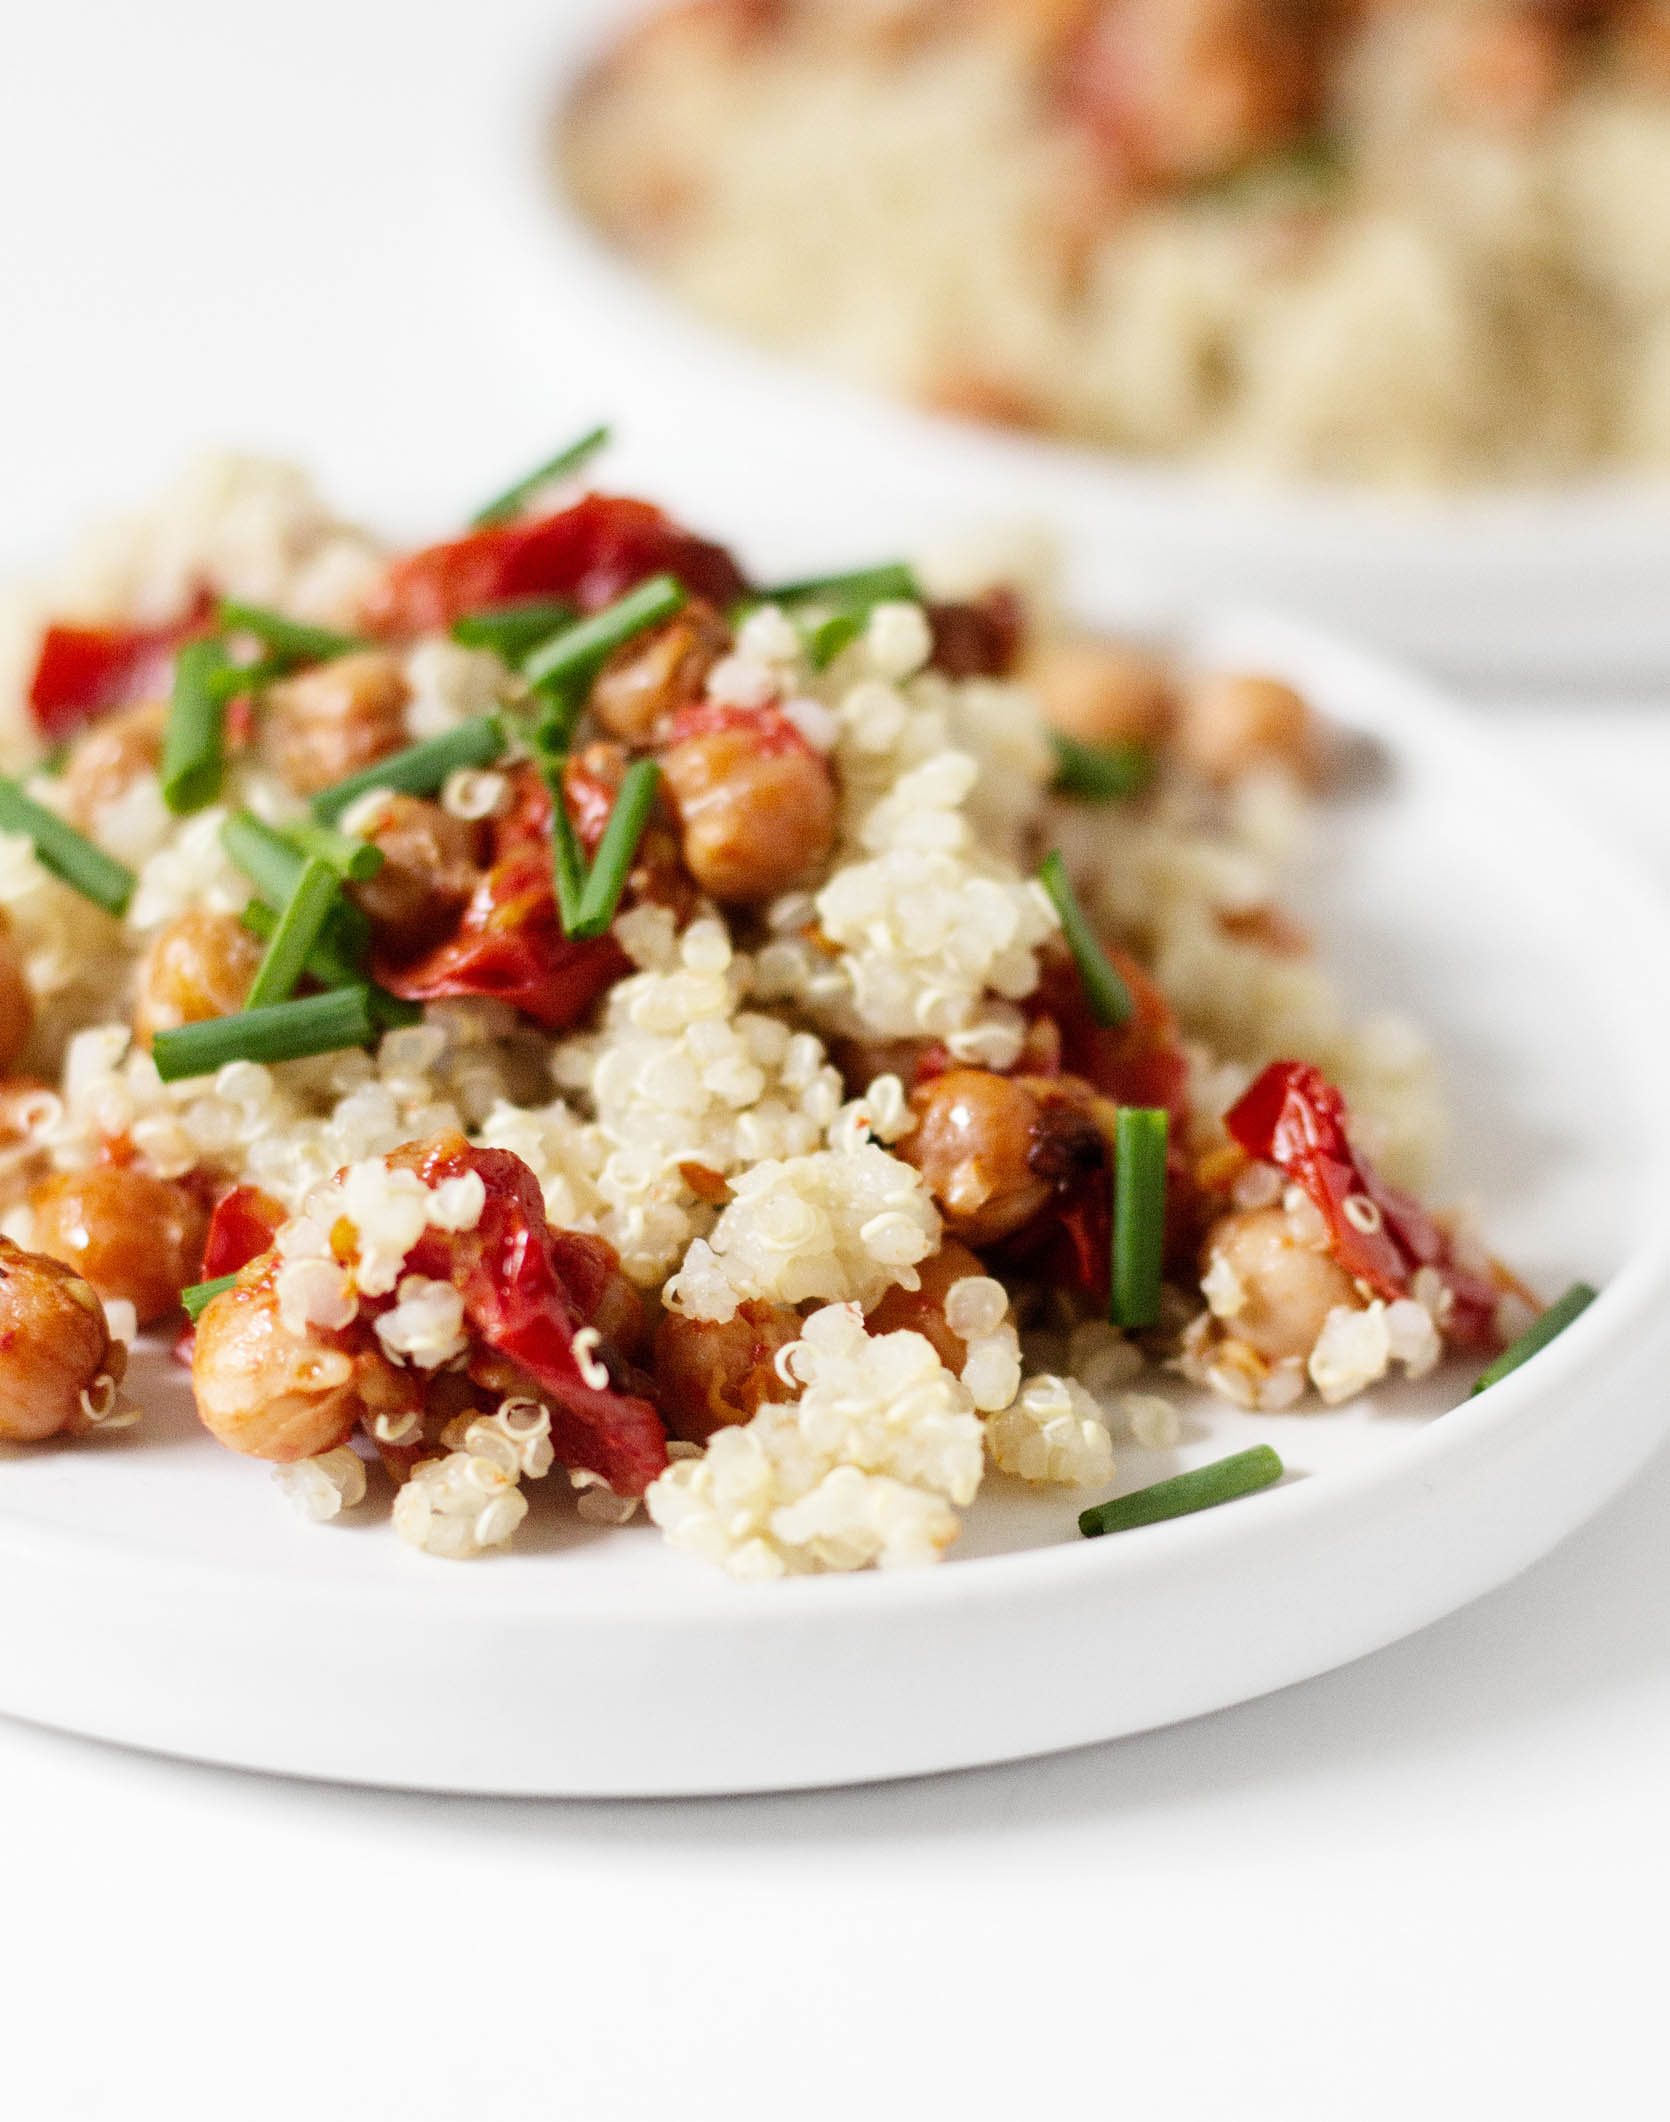 Quinoa with Garlic Roasted Cherry Tomatoes & Chickpeas